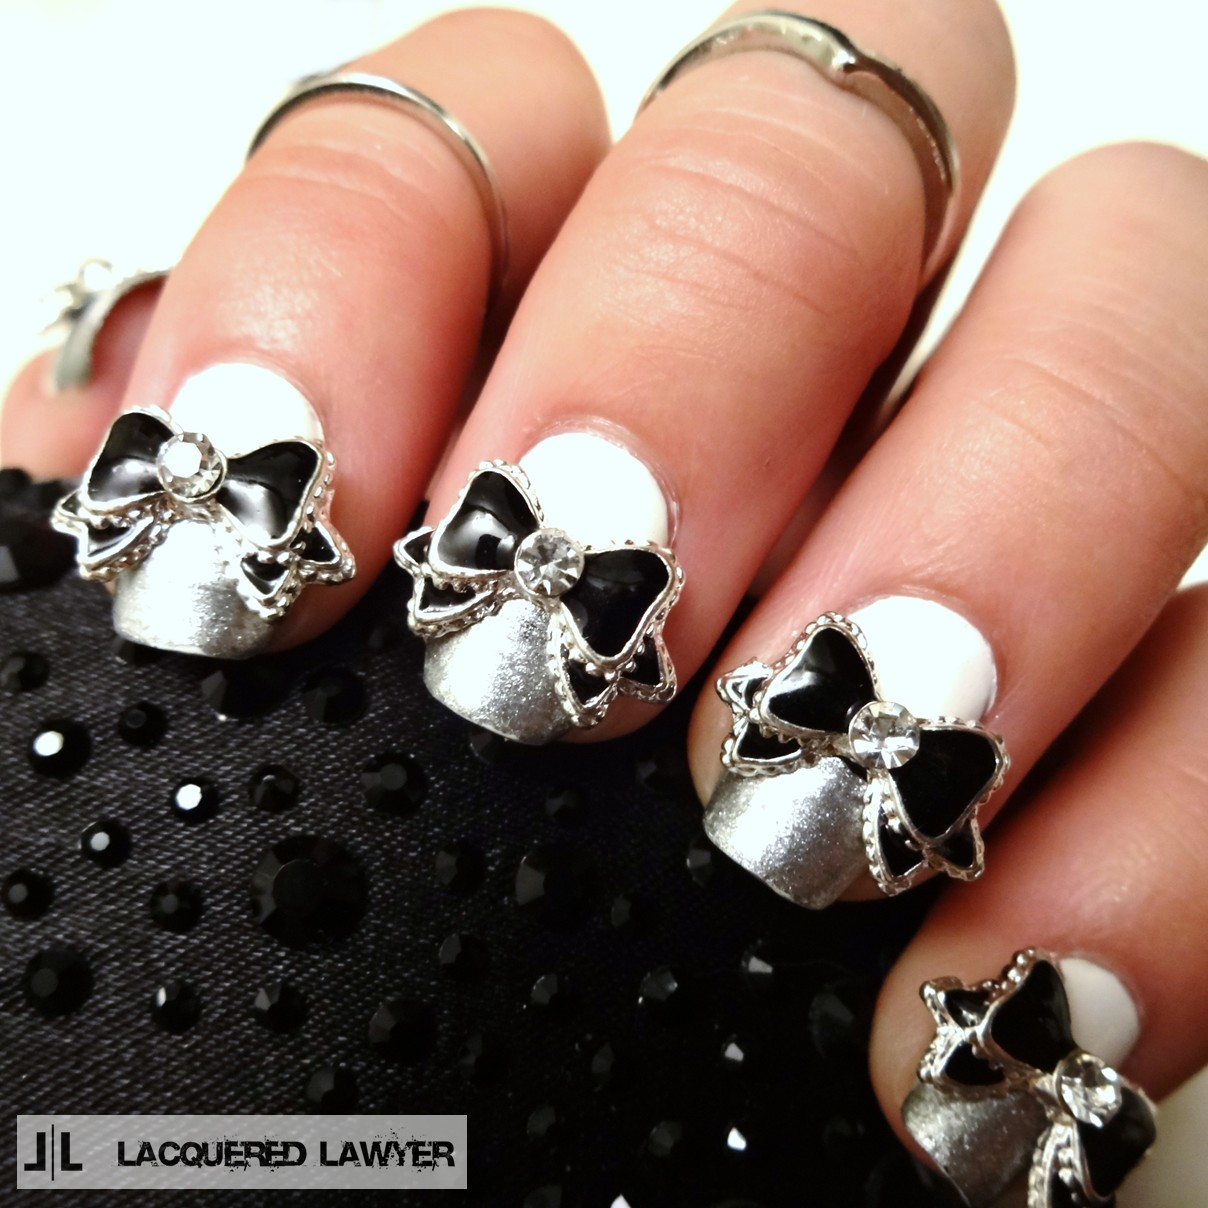 Lacquered lawyer nail art blog bow tie affair part one black bow 3d nail art prinsesfo Image collections